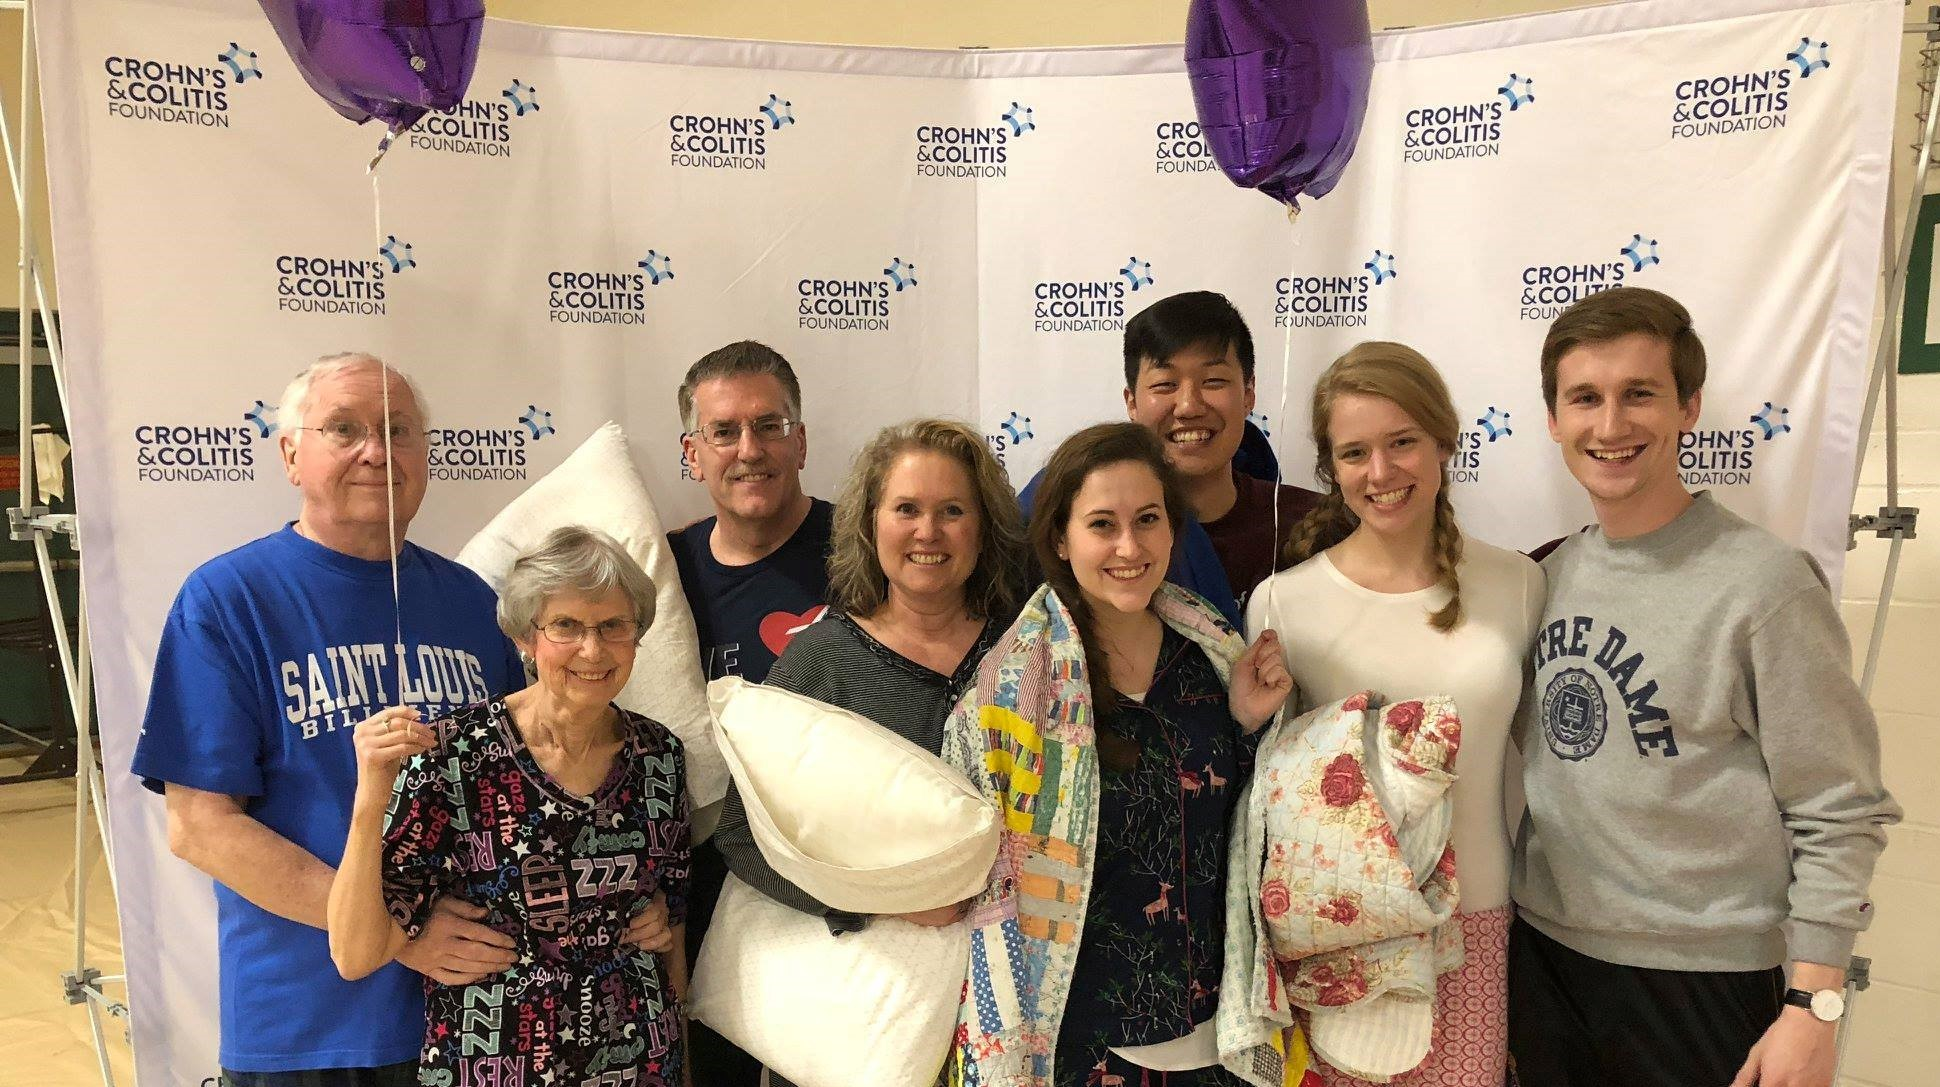 Getting Involved in the Crohn's Community